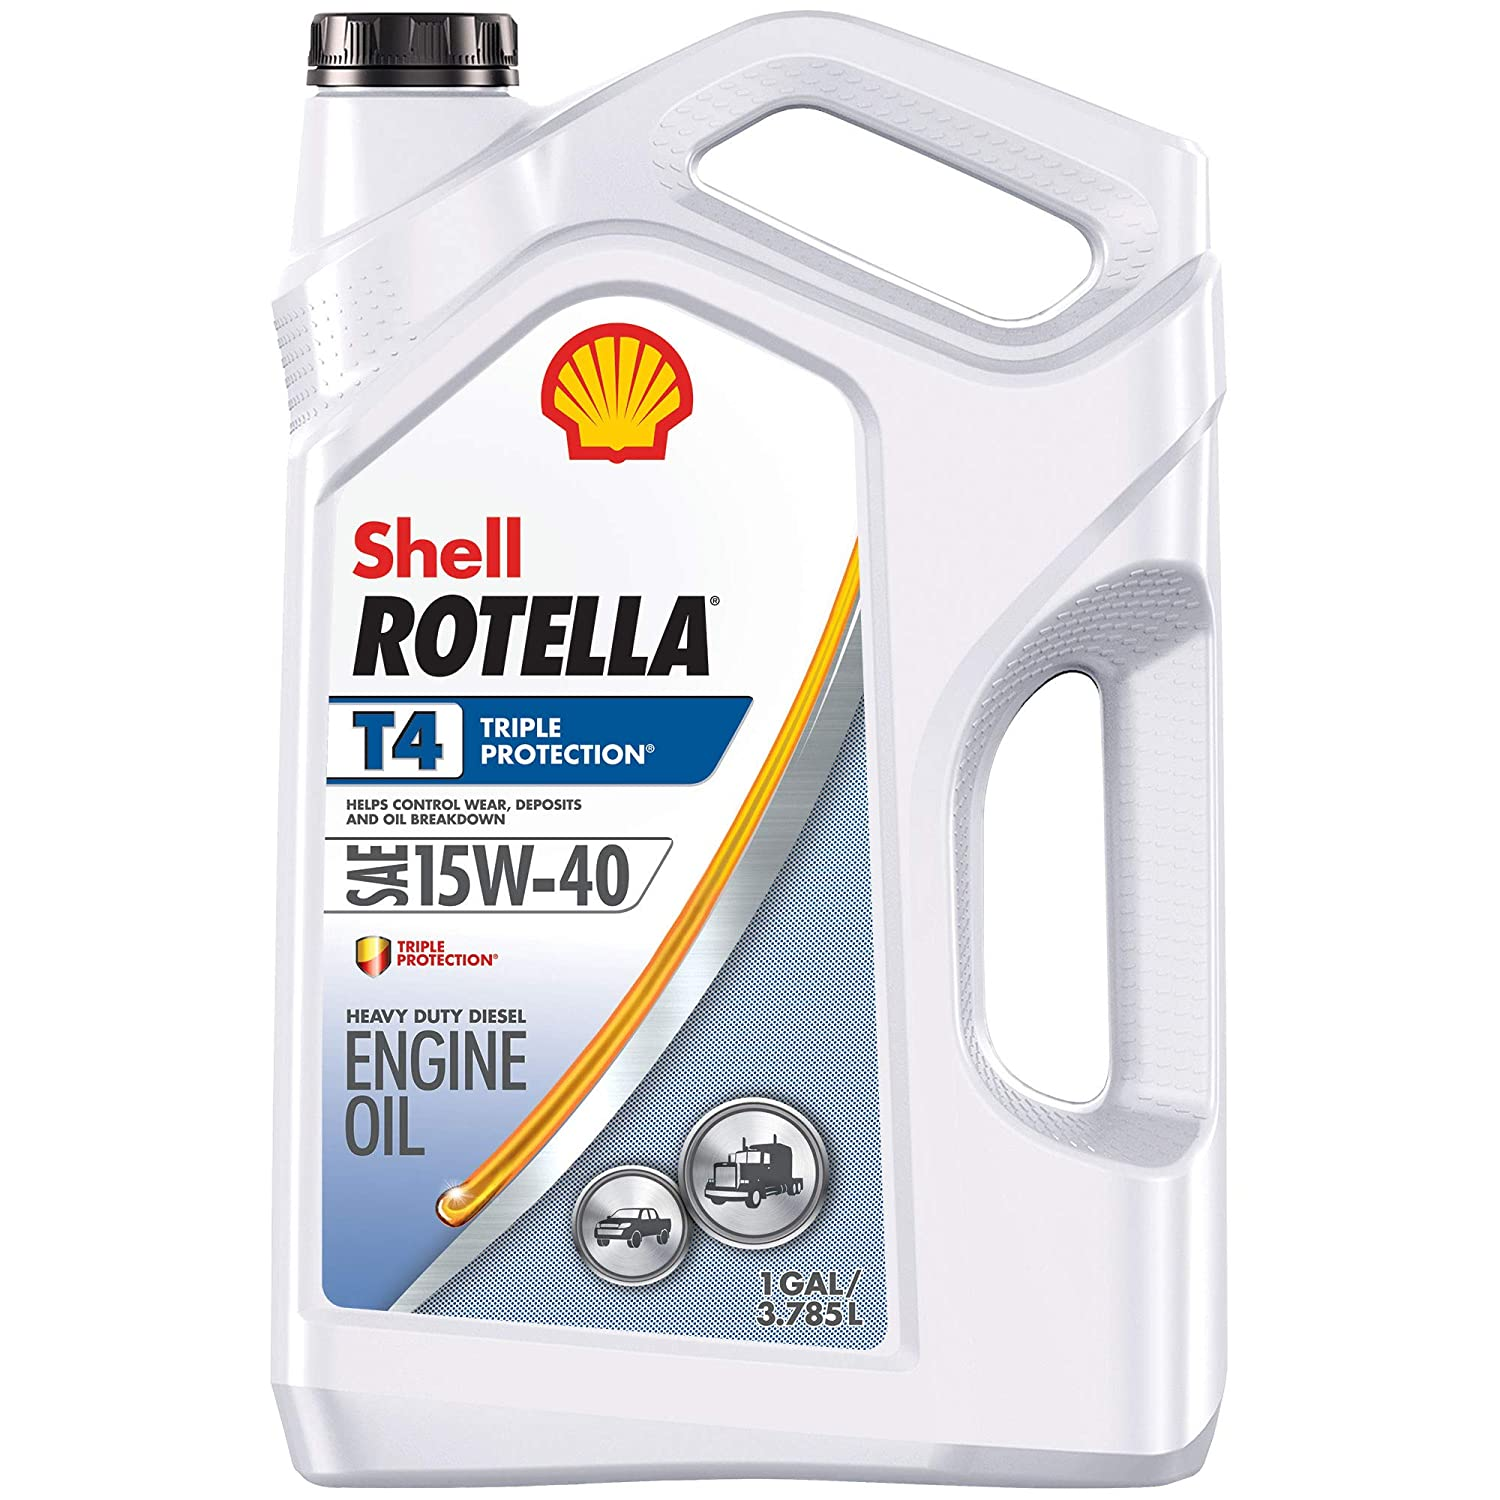 Shell Rotella T4 >> Shell Rotella T4 Triple Protection Conventional 15w 40 Diesel Engine Oil 1 Gallon Single Pack